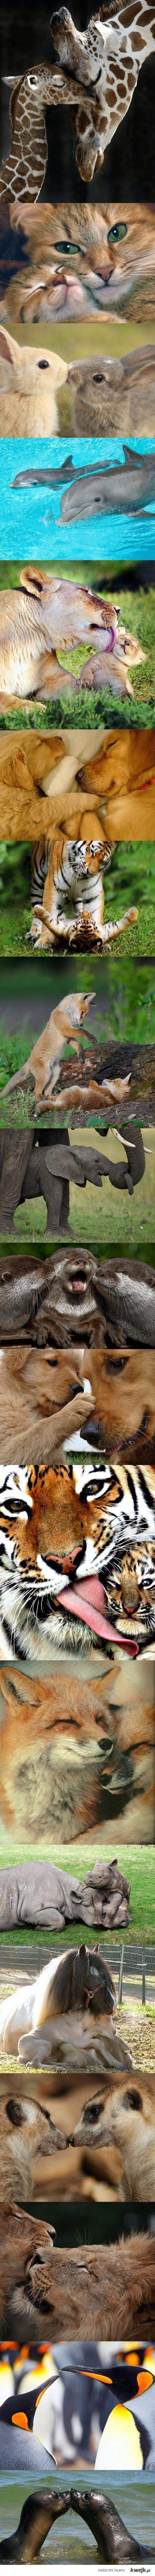 Cute Animal Moments, I love the tiger kiss :)